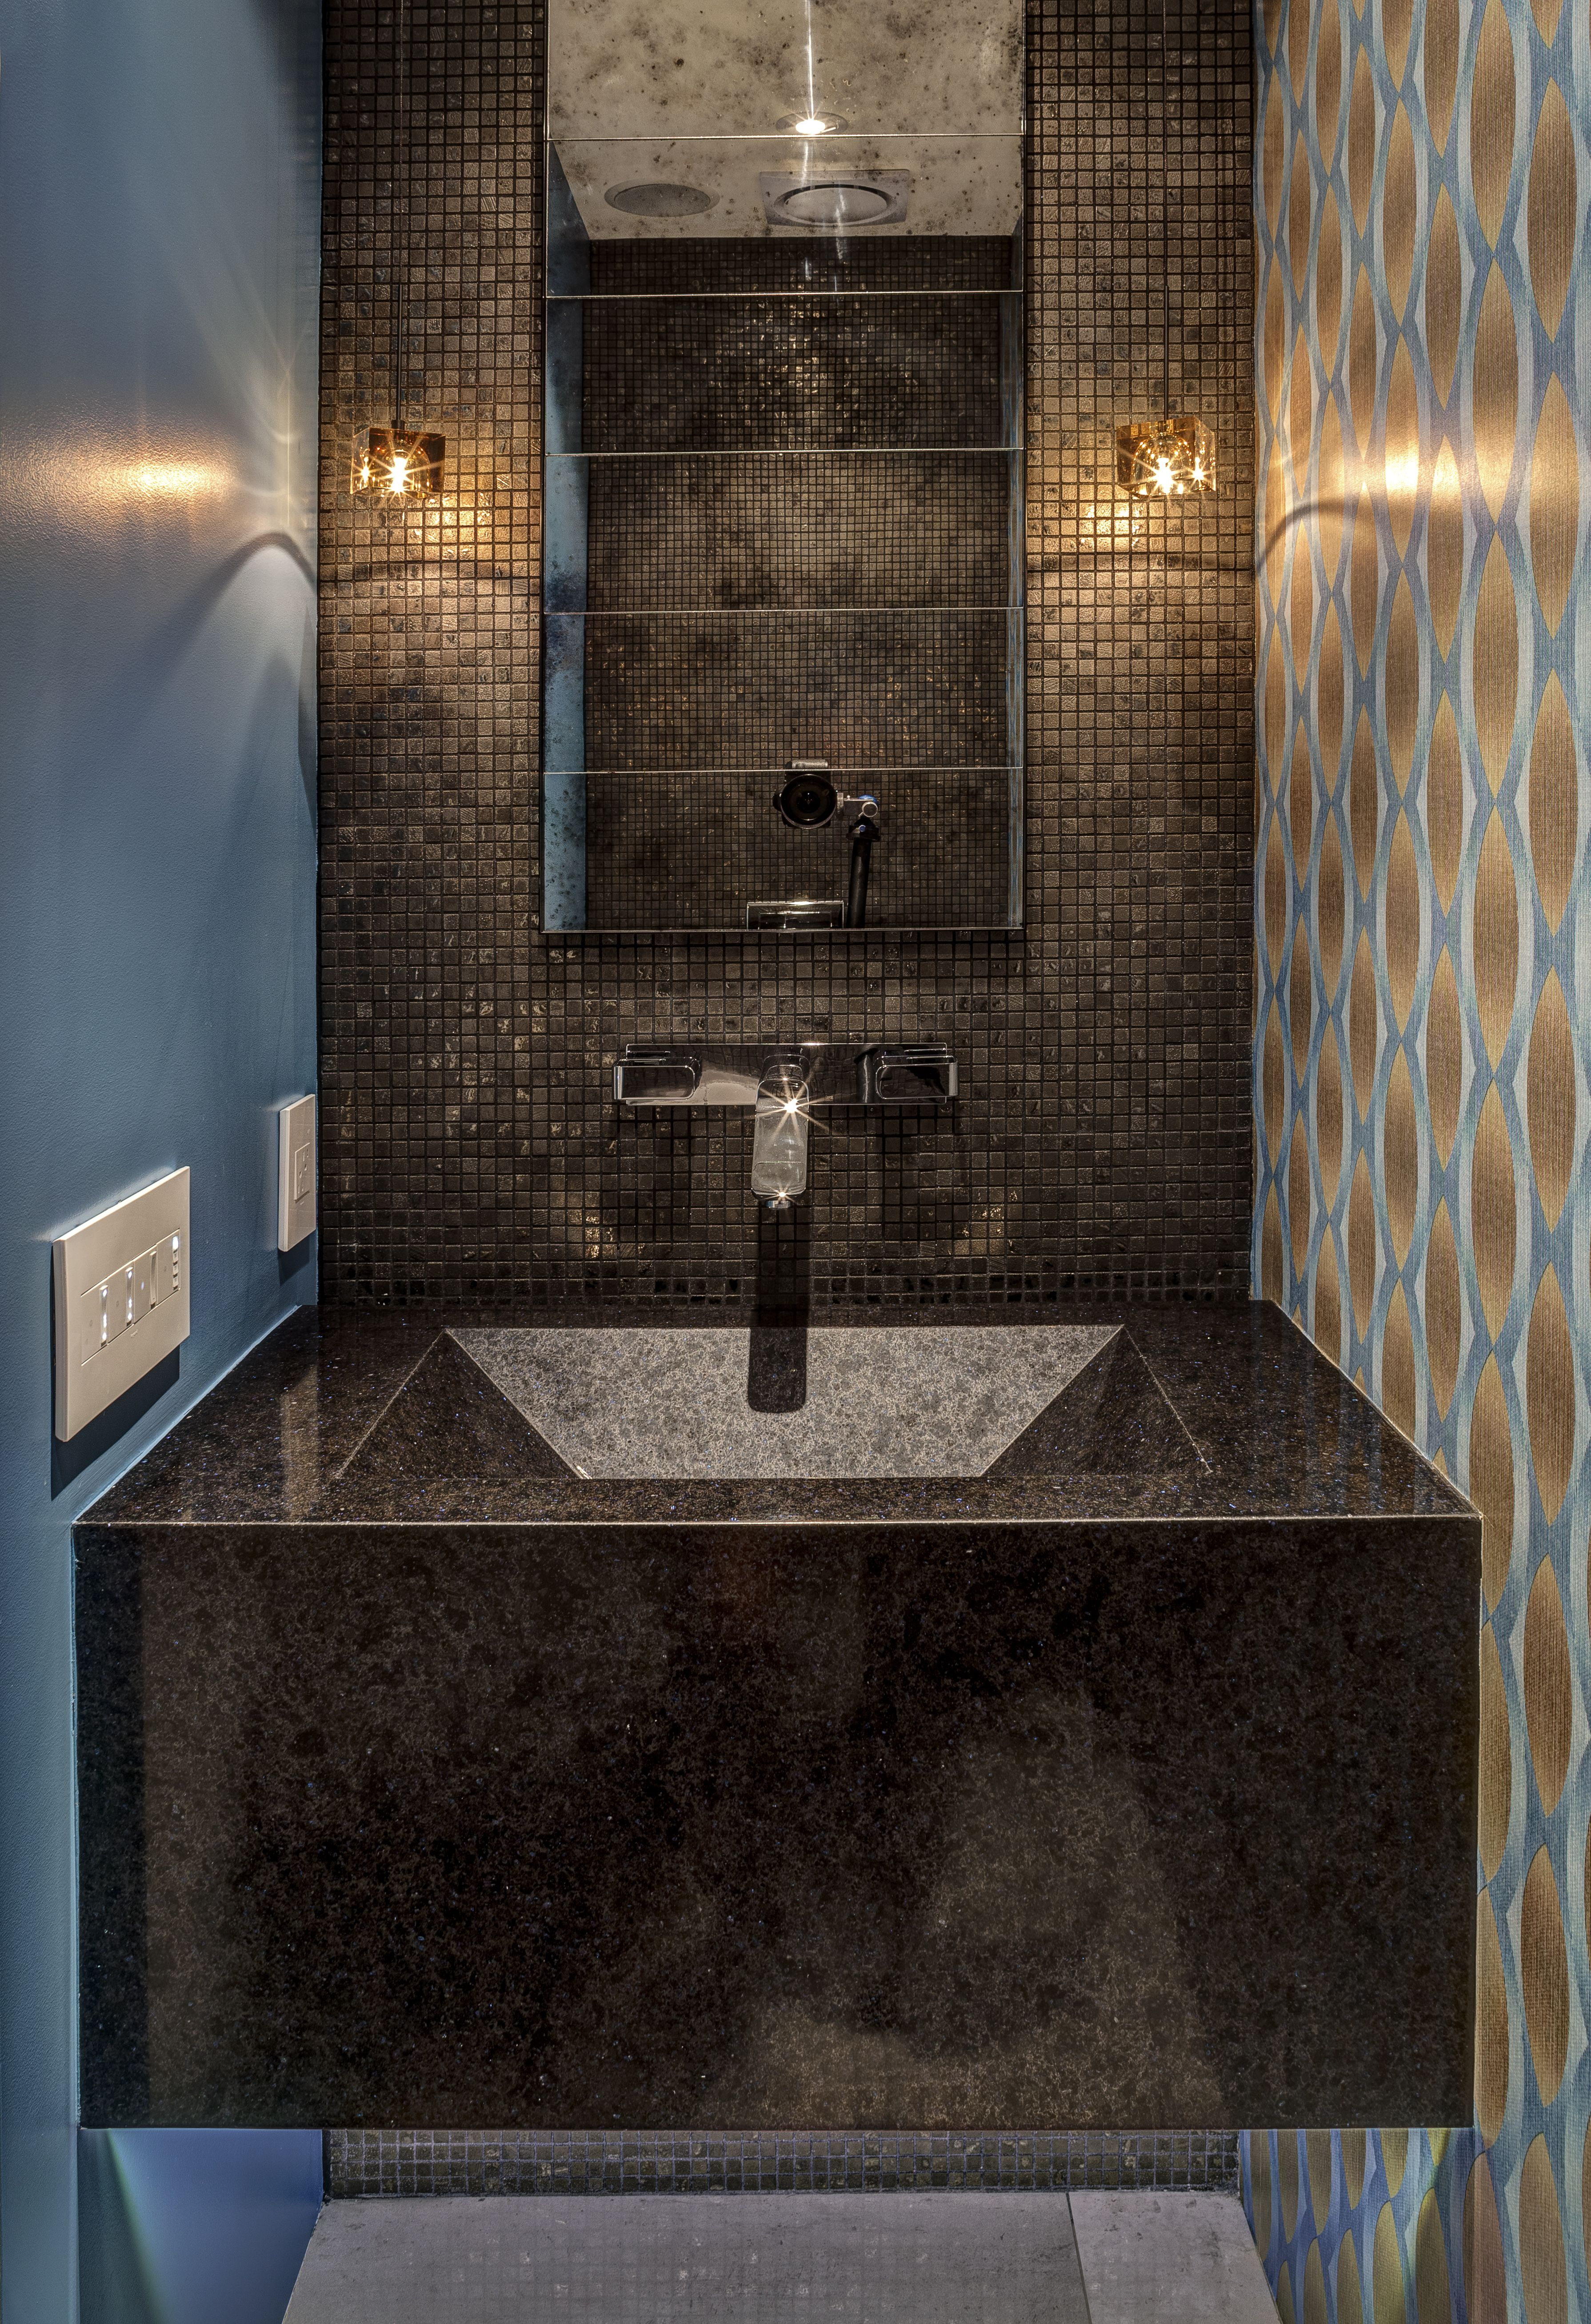 AXOR Urquiola Wall Mounted Faucet for the Powder Bath   Project ...